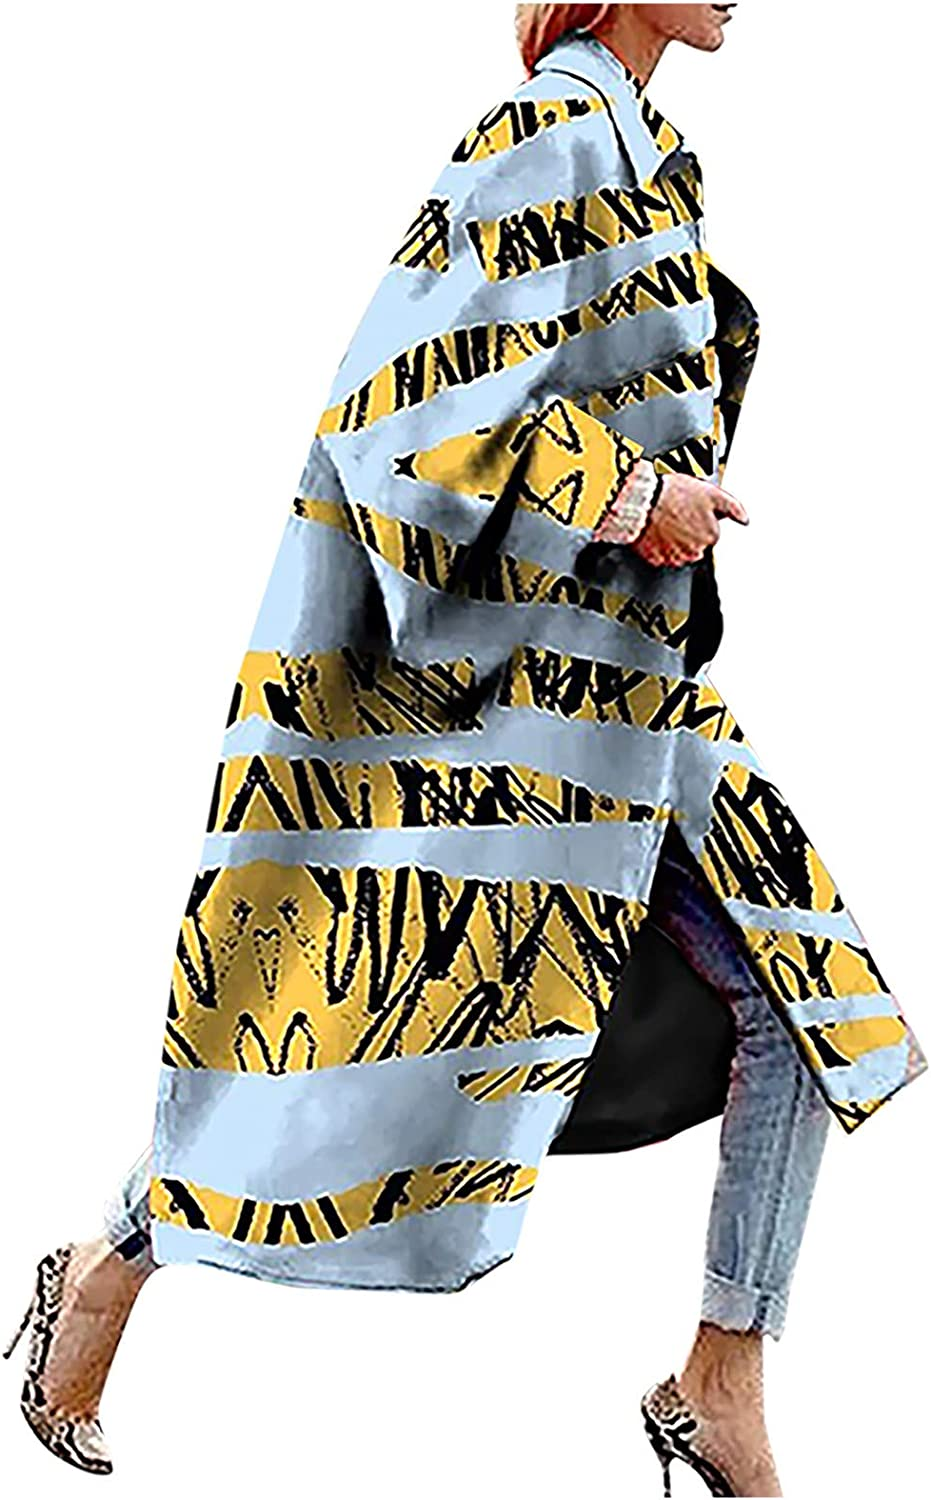 Women's Long Trench Coat Plus Size Fashion Color Block Printed Pocket Oversized Jacket Outerwear Cardigan Overcoat S-5XL